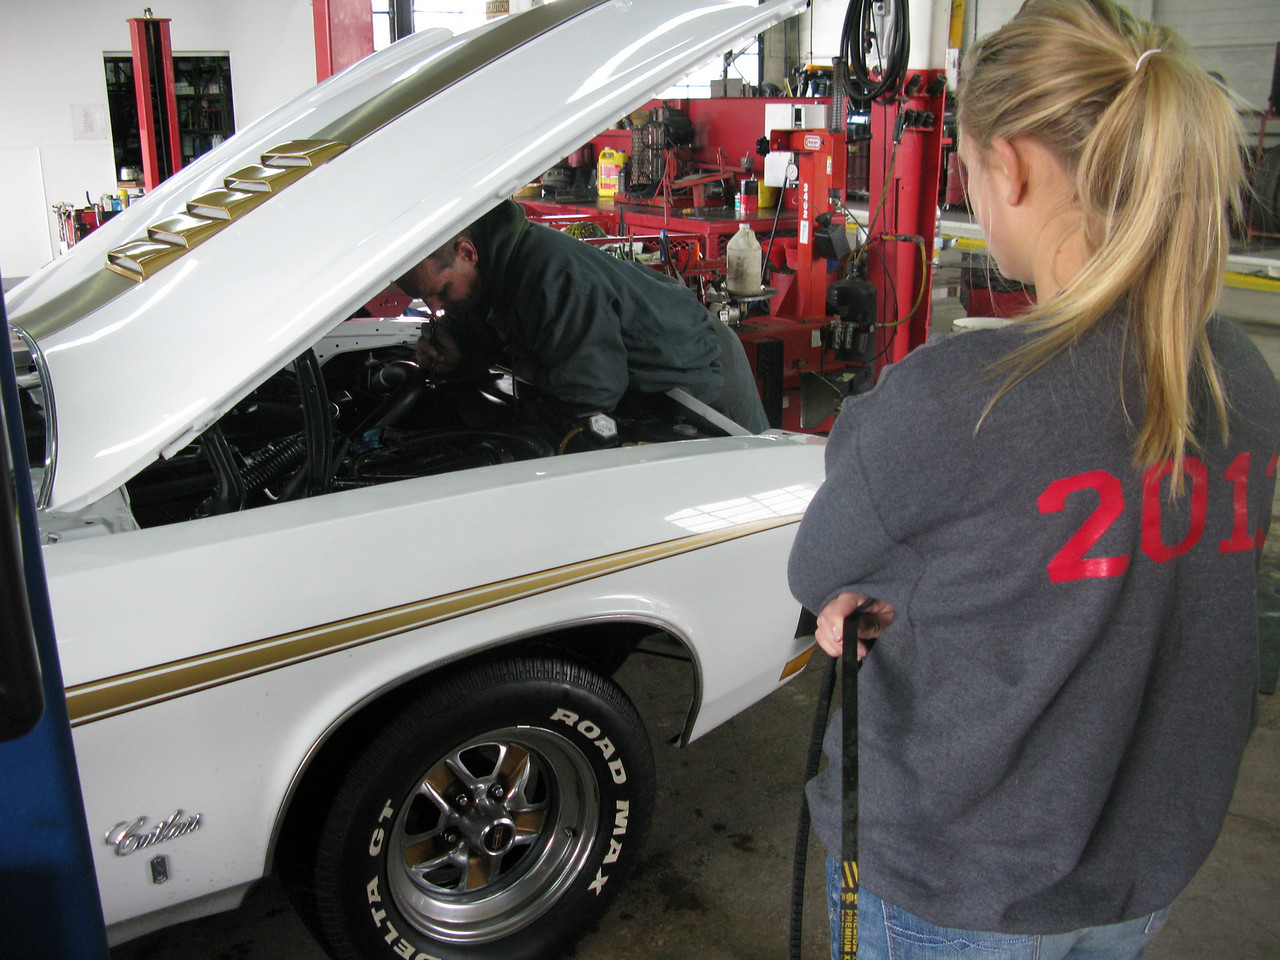 Repairs take over 3 hours as getting a belt to fit is problematic. Maddy is getting a crash course in car mechanics!